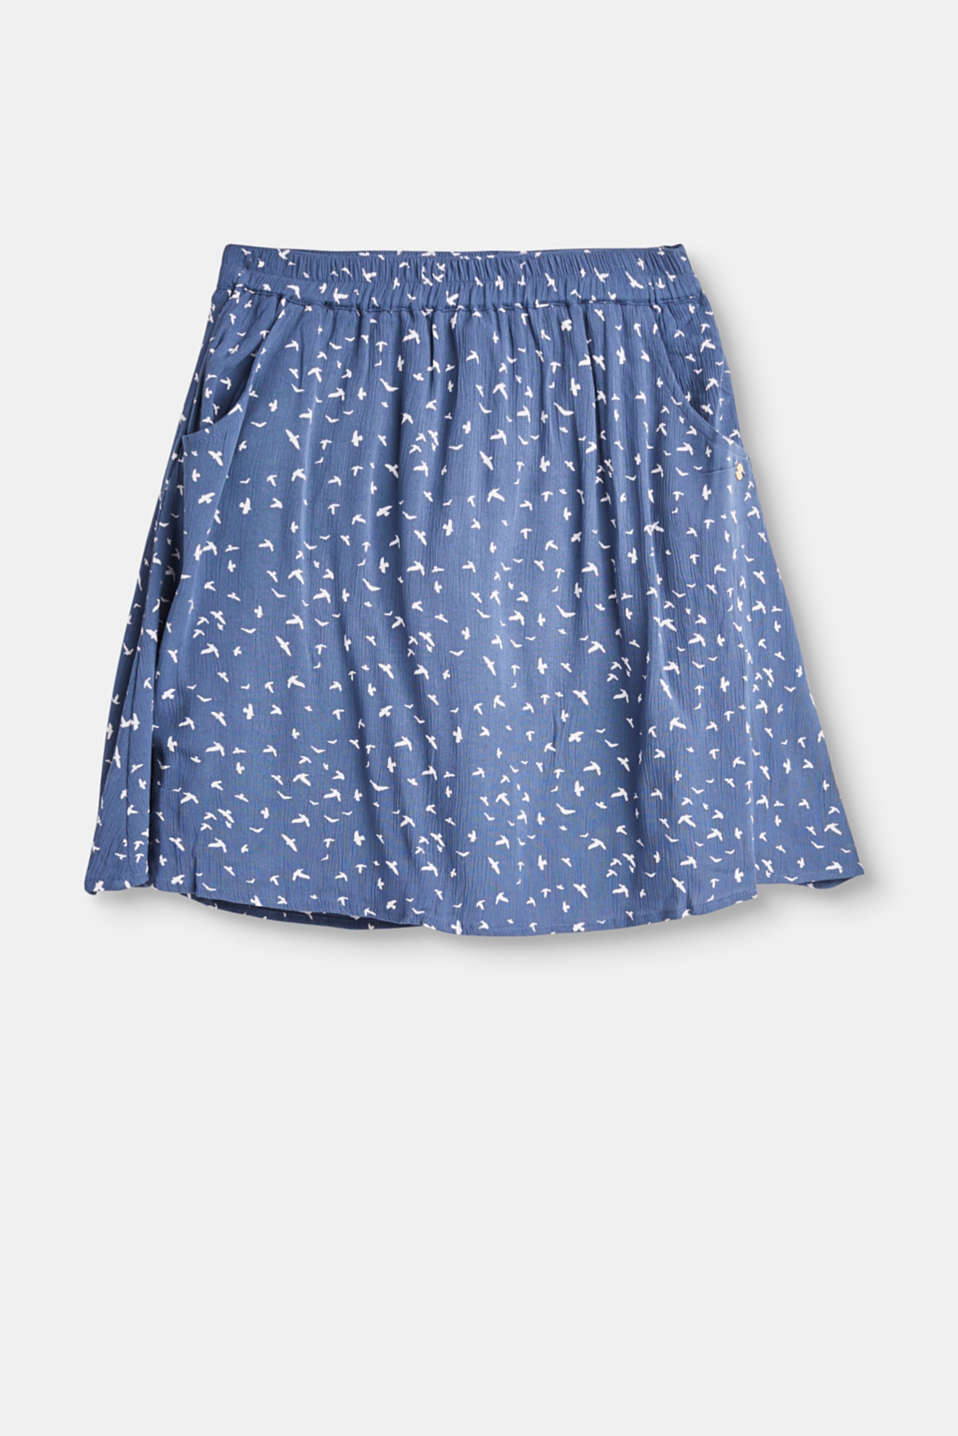 Esprit - Flowing skirt with an all-over print